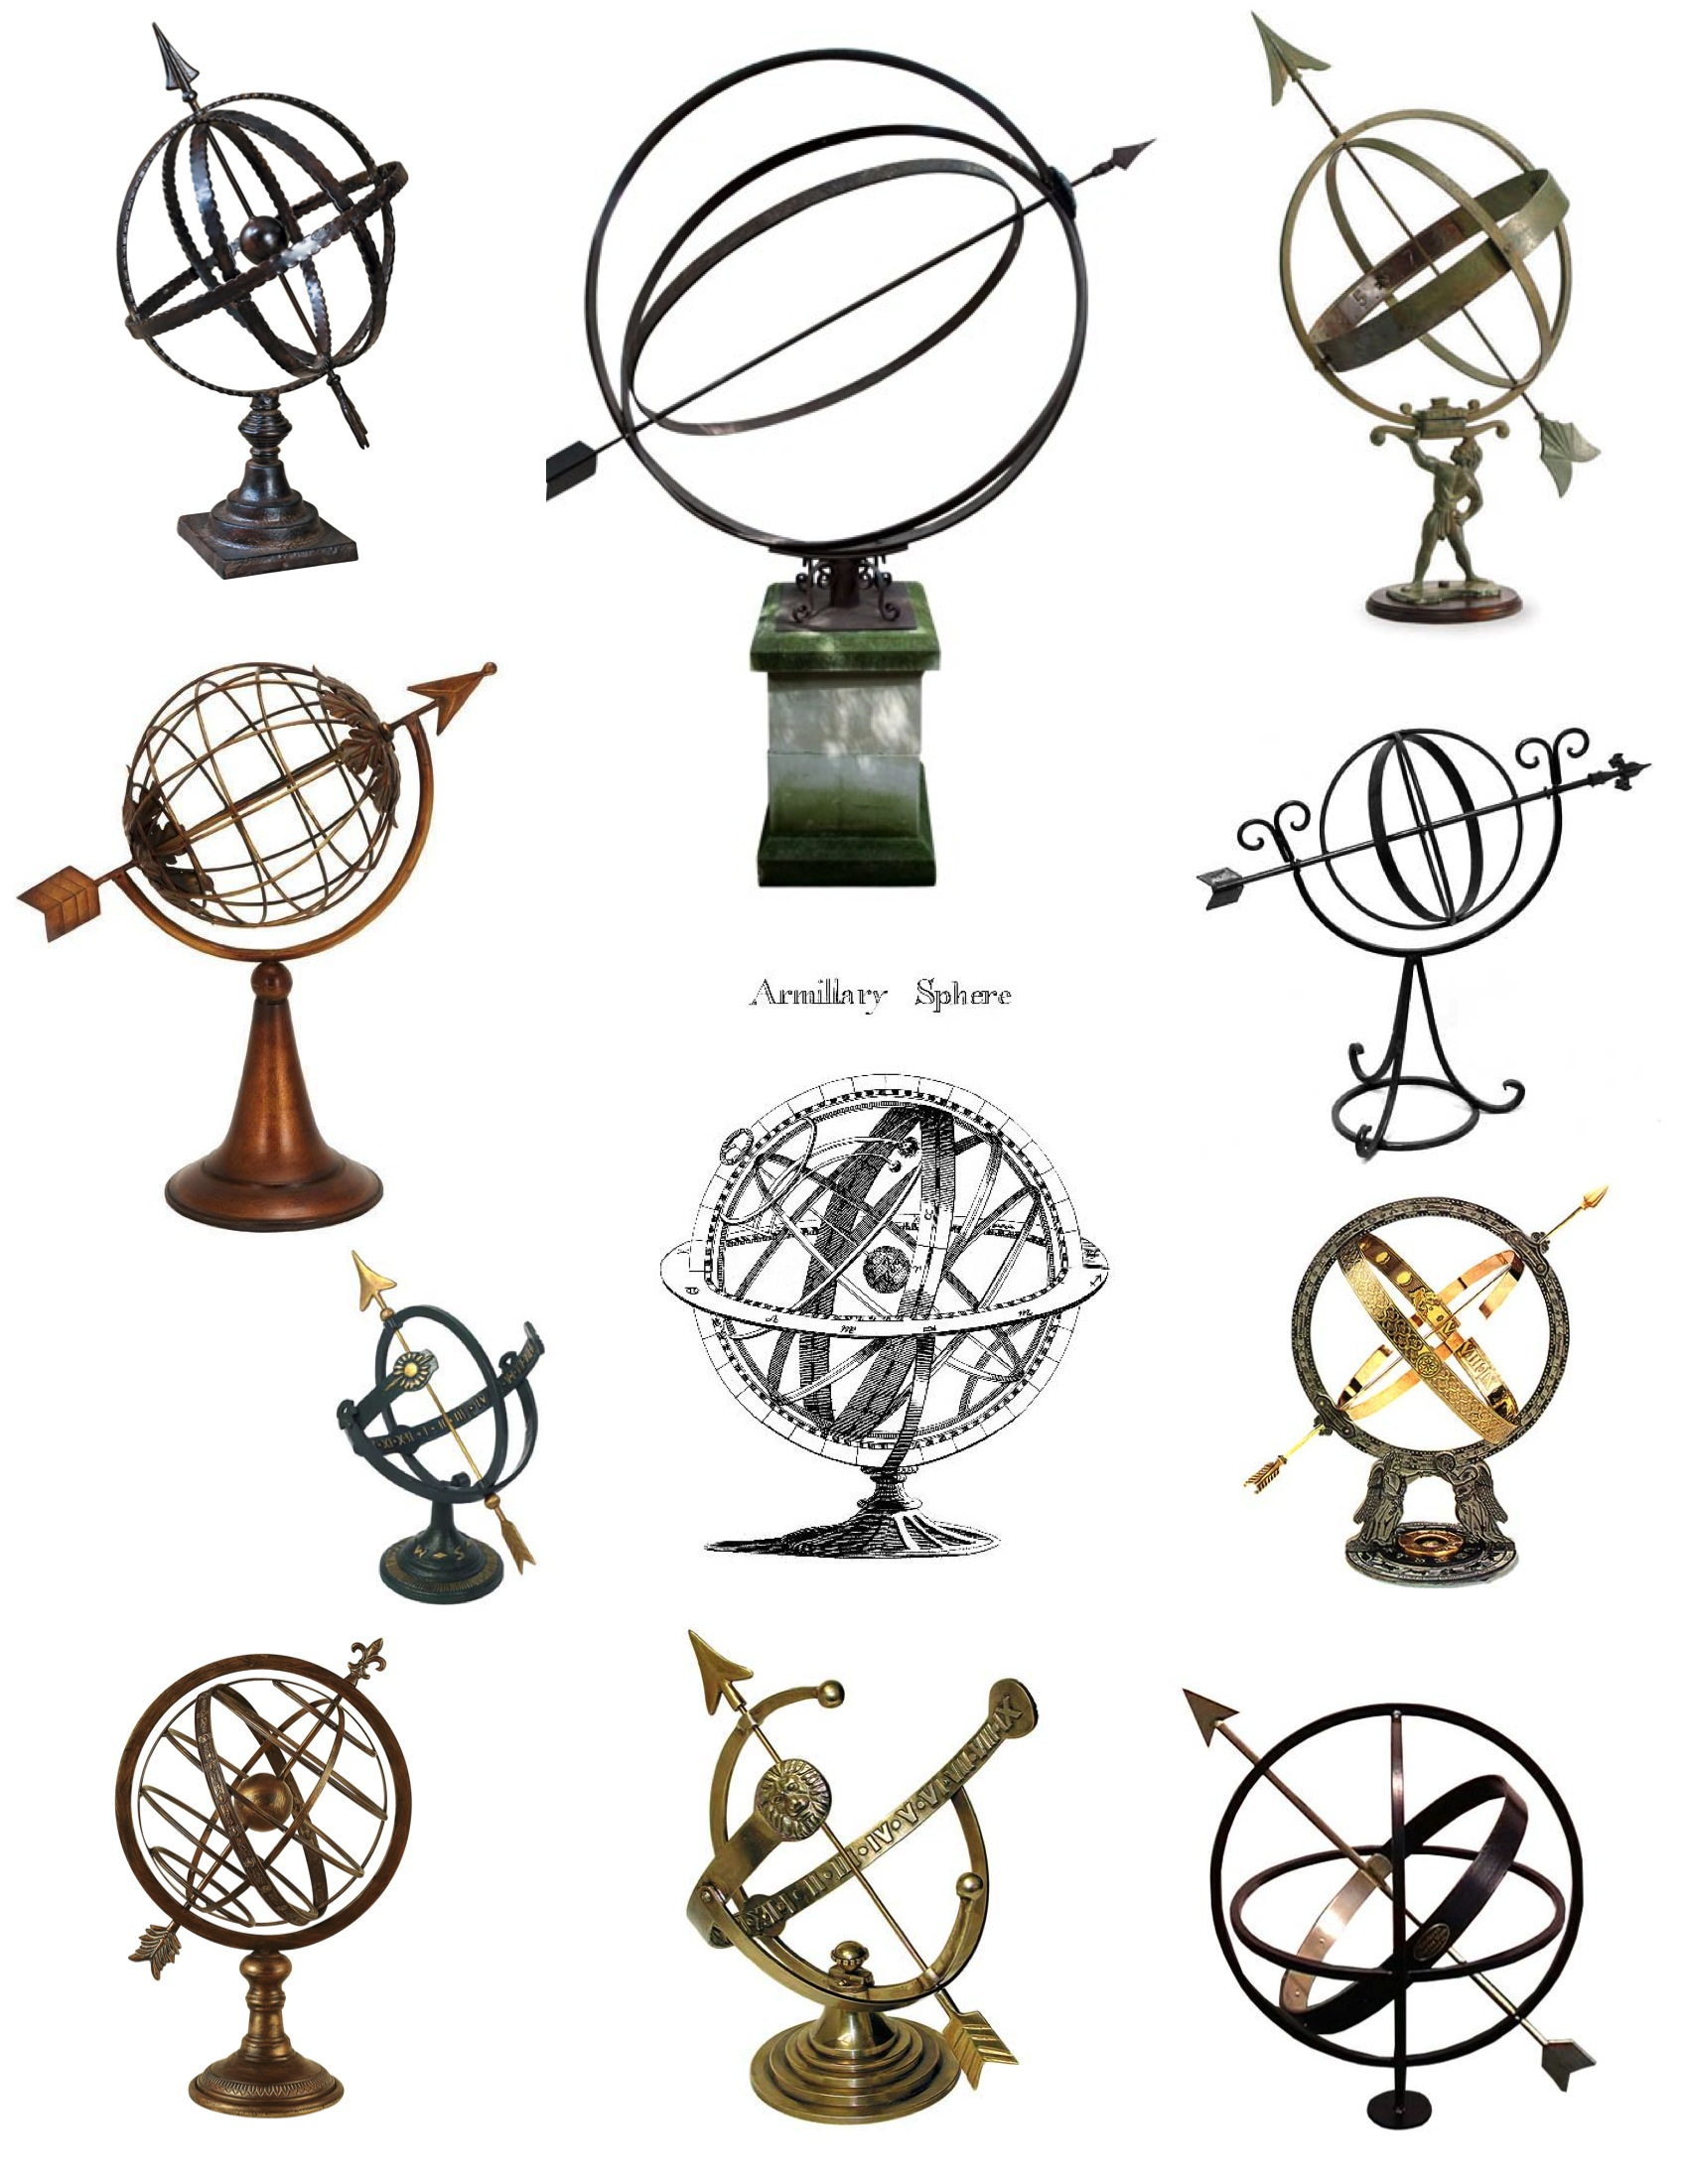 Interlocking Rings Of Timeless Design The Armillary Sphere House